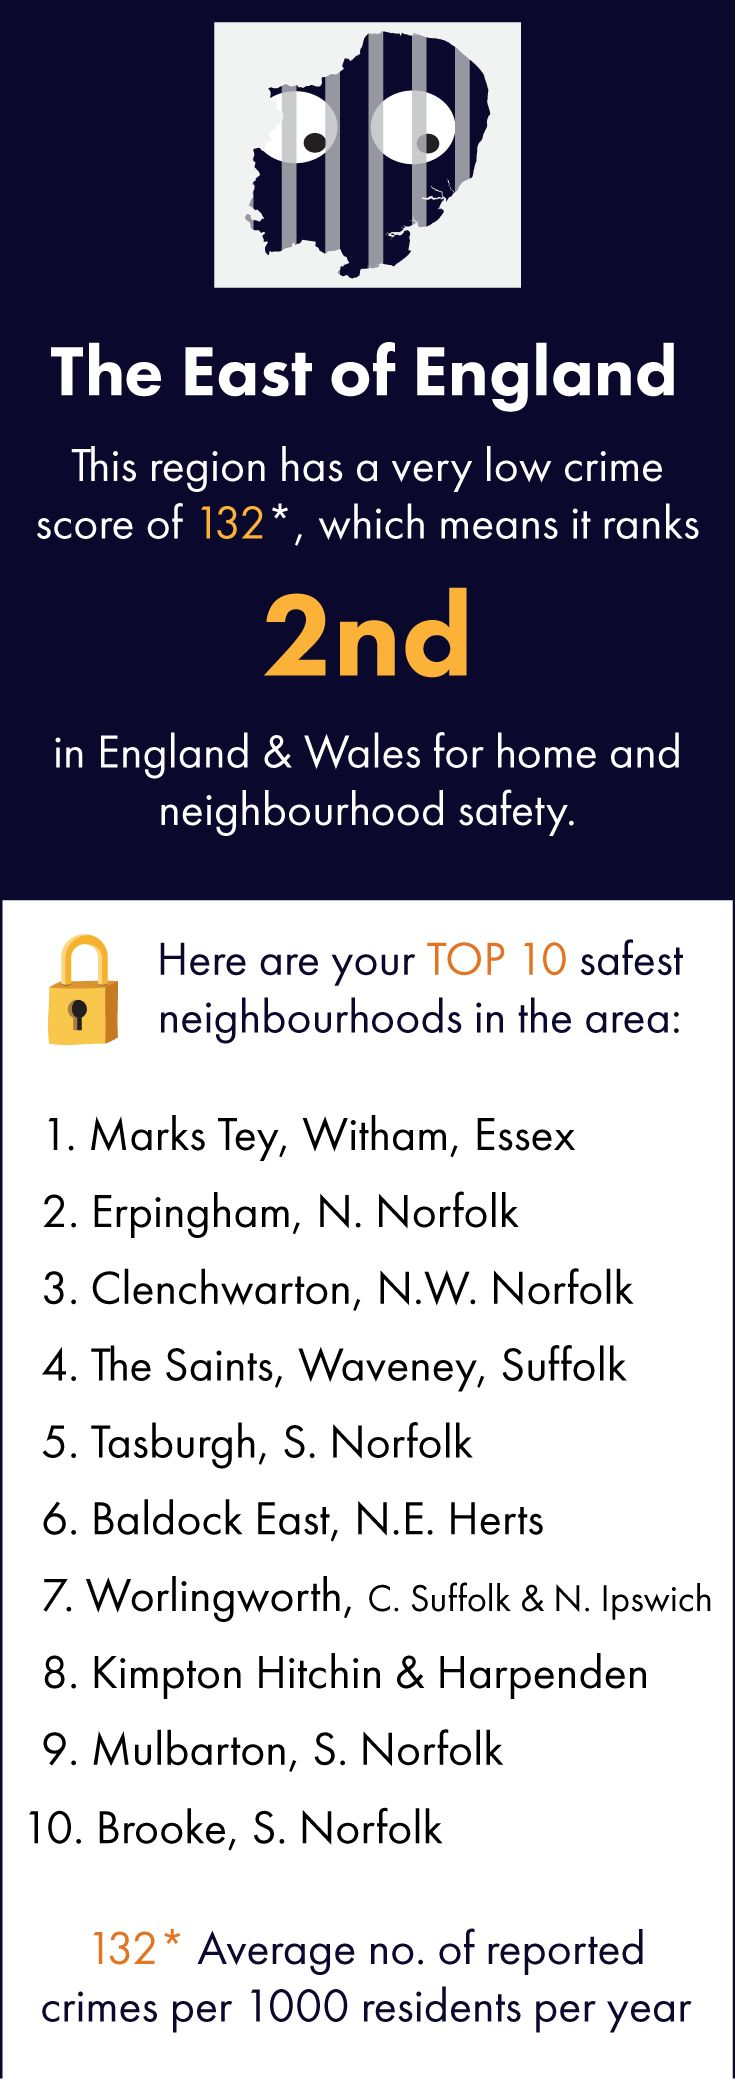 The LLL team has crunched all their national crime data to bring you their TOP 10 regional safe havens in England & Wales. Click through to see a more detailed crime breakdown, as well as other cool info. You can also search for YOUR village, town or city on our site. Featuring: Witham, Essex, Erpingham, Norfolk, Clenchwarton, Waveney, Suffolk, Tasburgh, Baldock, Hertfordshire, Worlingworth, Kimpton, Hitchin and Harpenden, Mulbarton, Brooke.